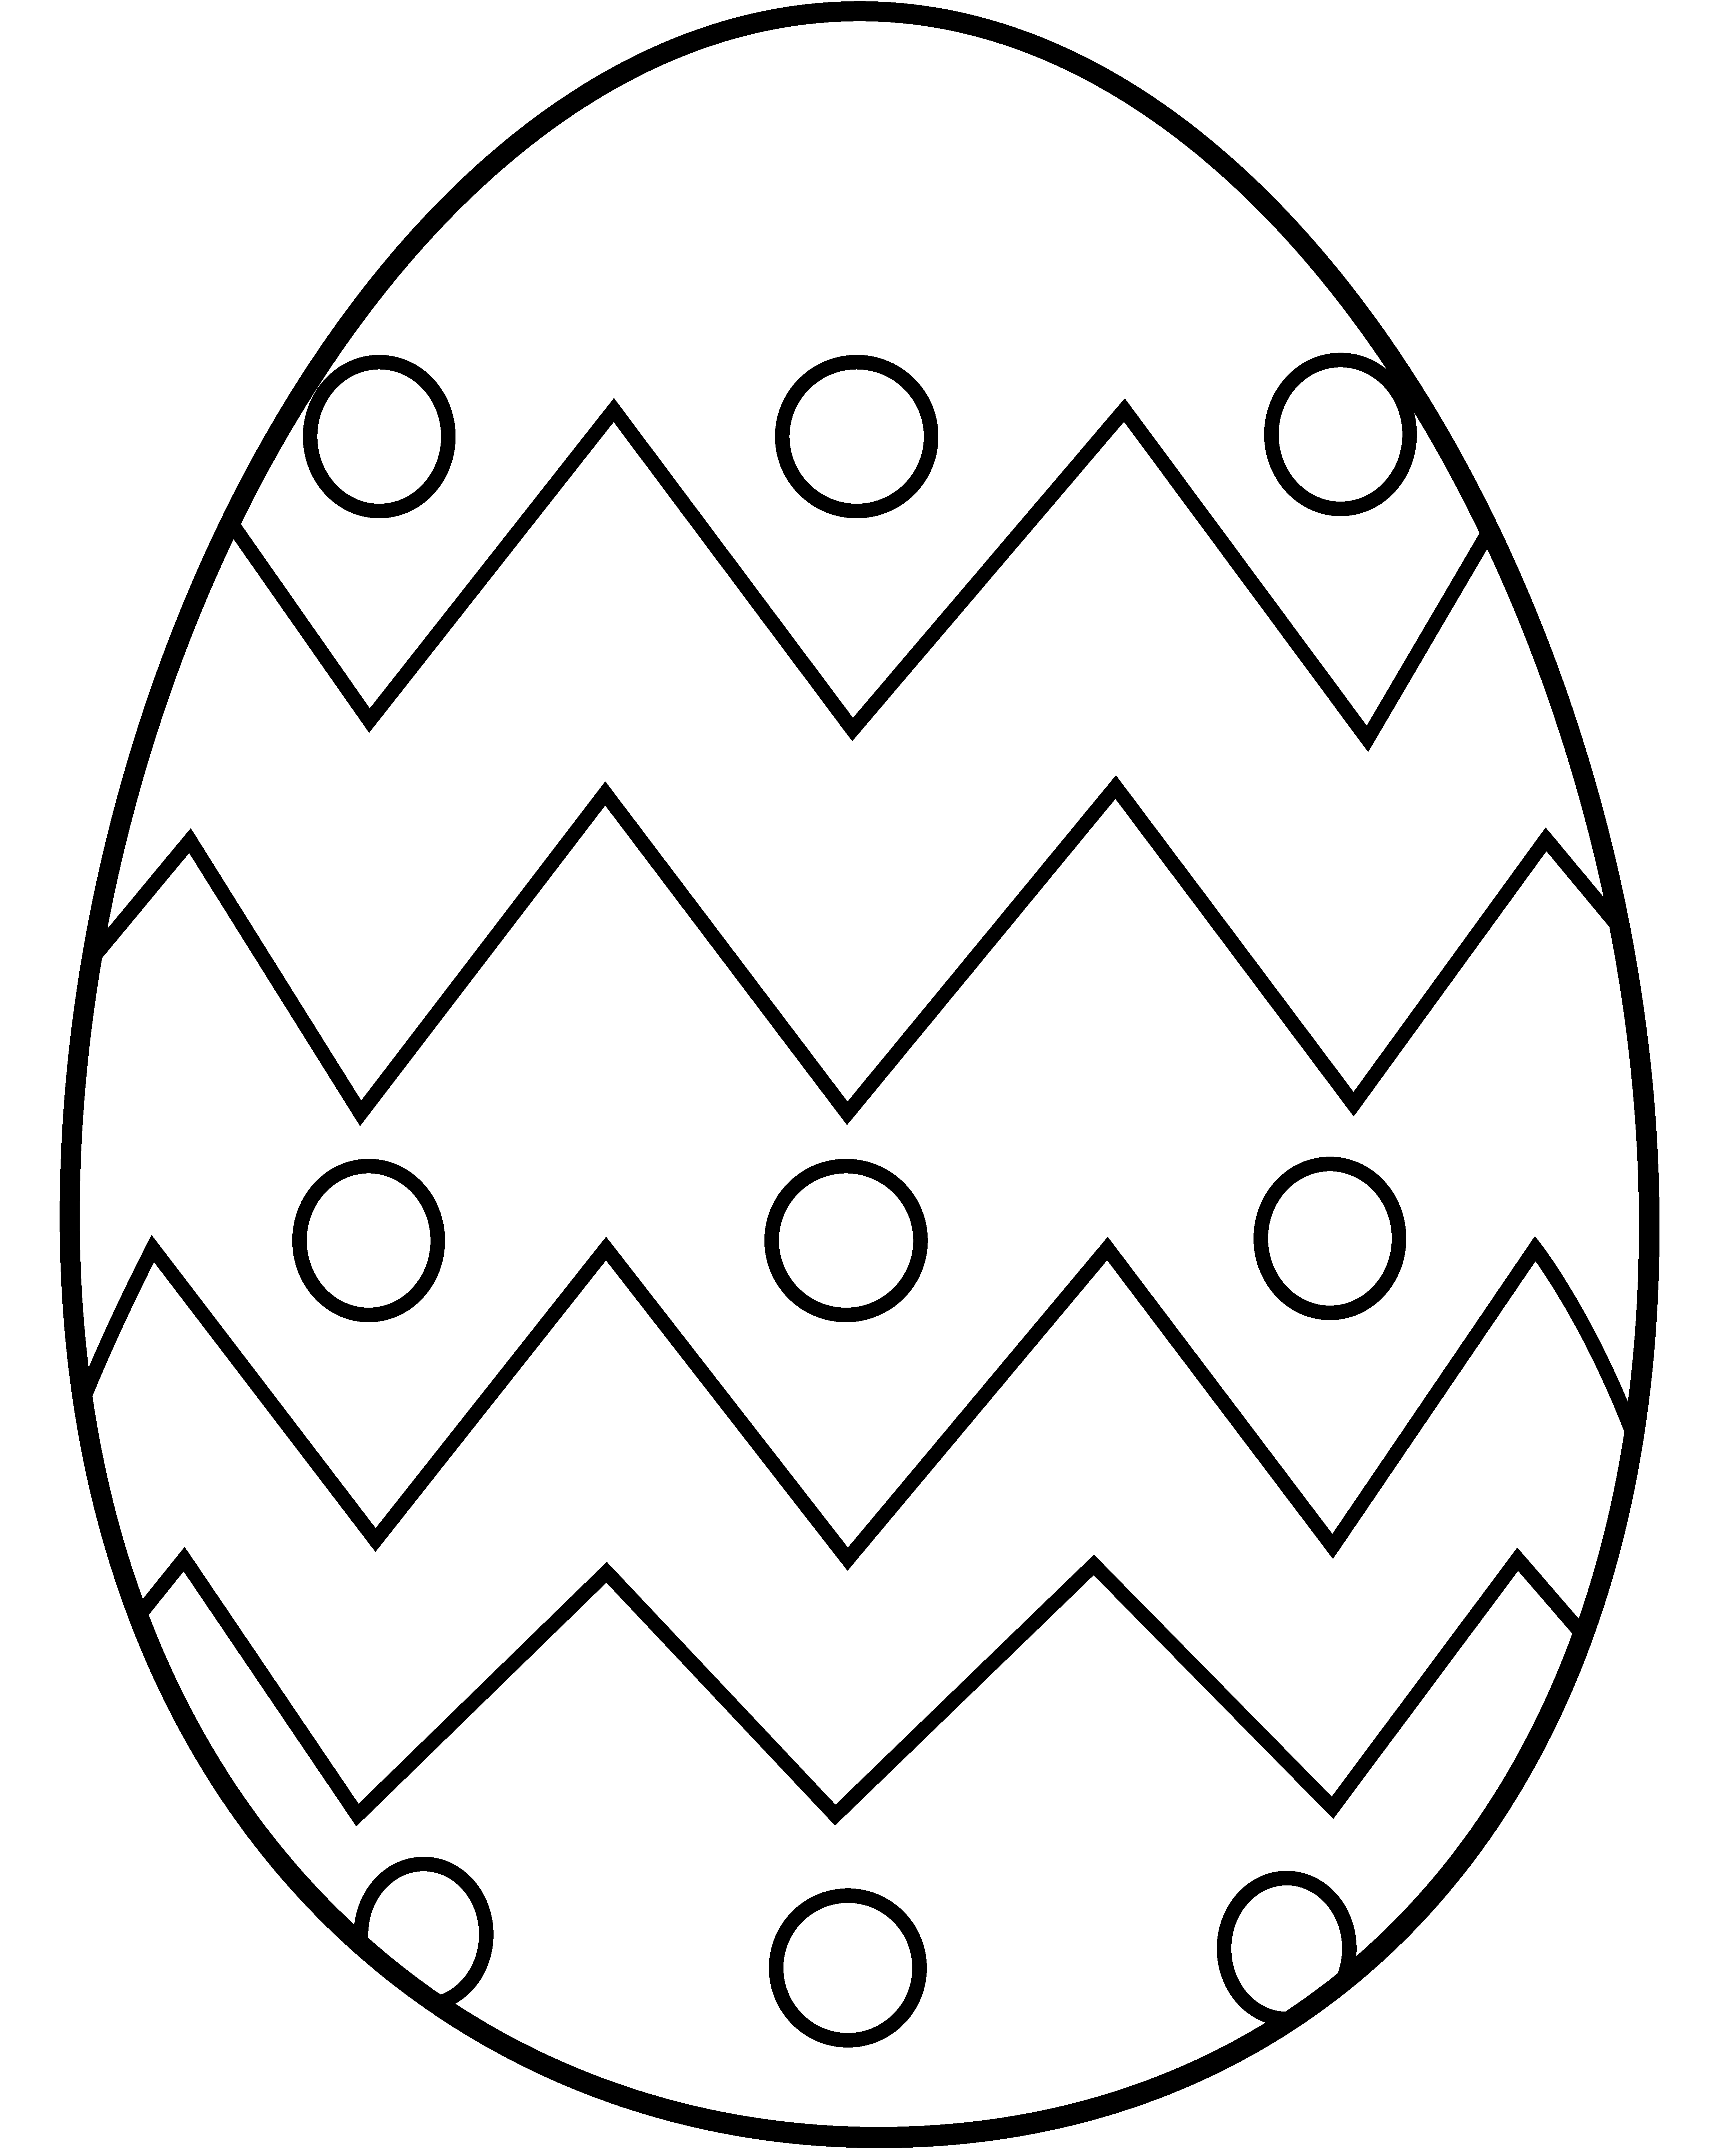 Puzzle clipart easter egg. To color in kolorowanki